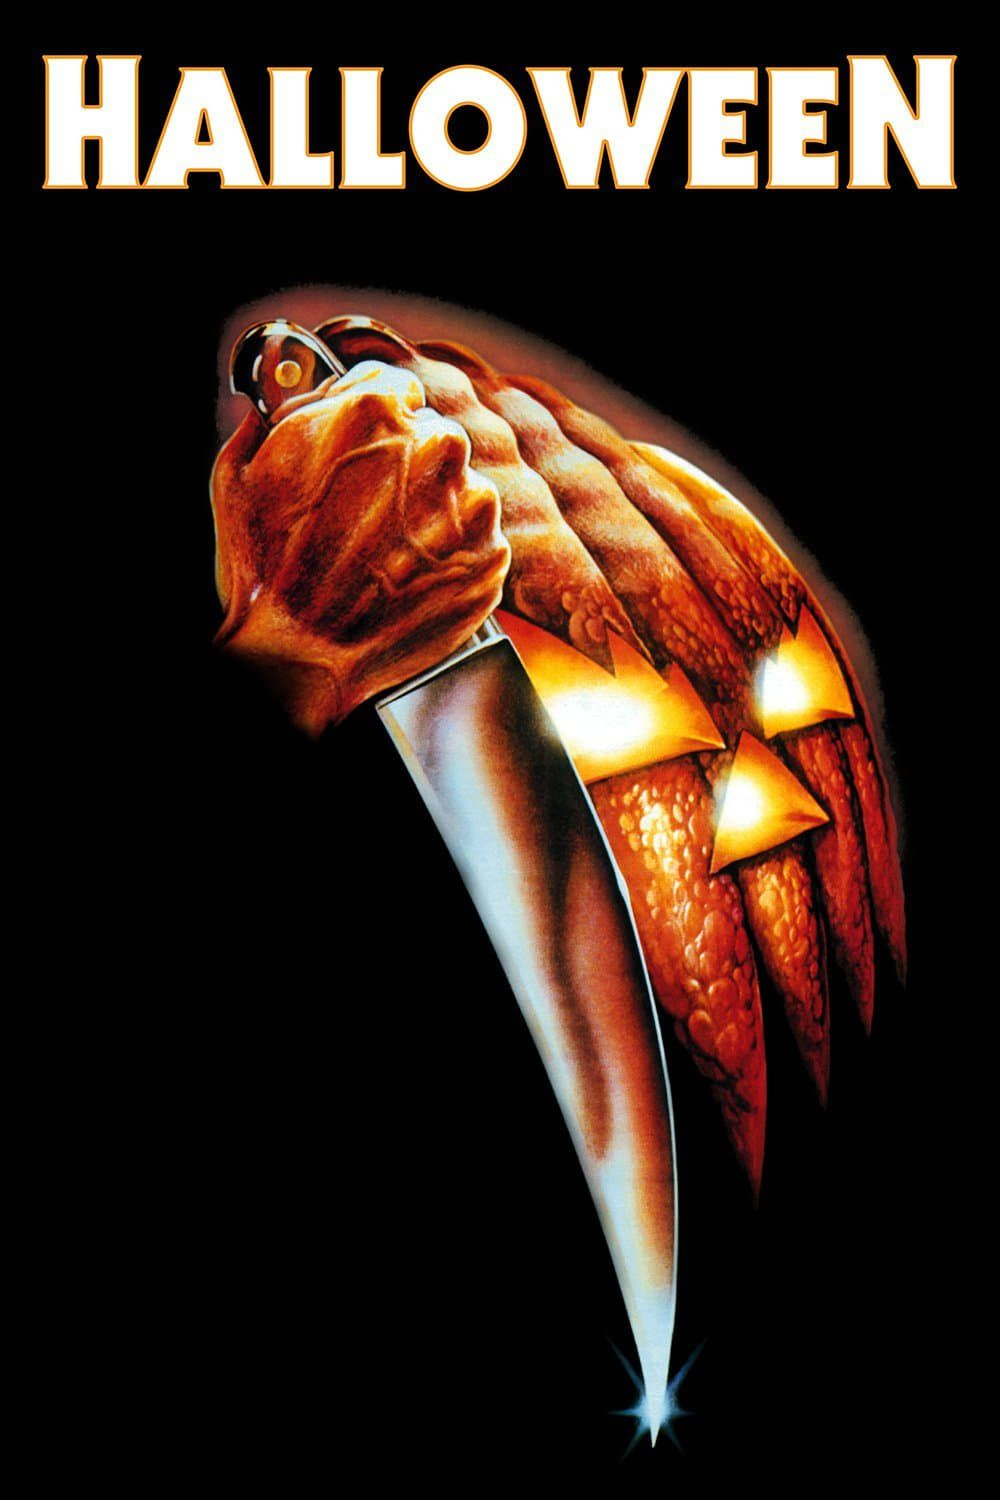 Halloween (1978) Halloween 1978, Halloween full movie